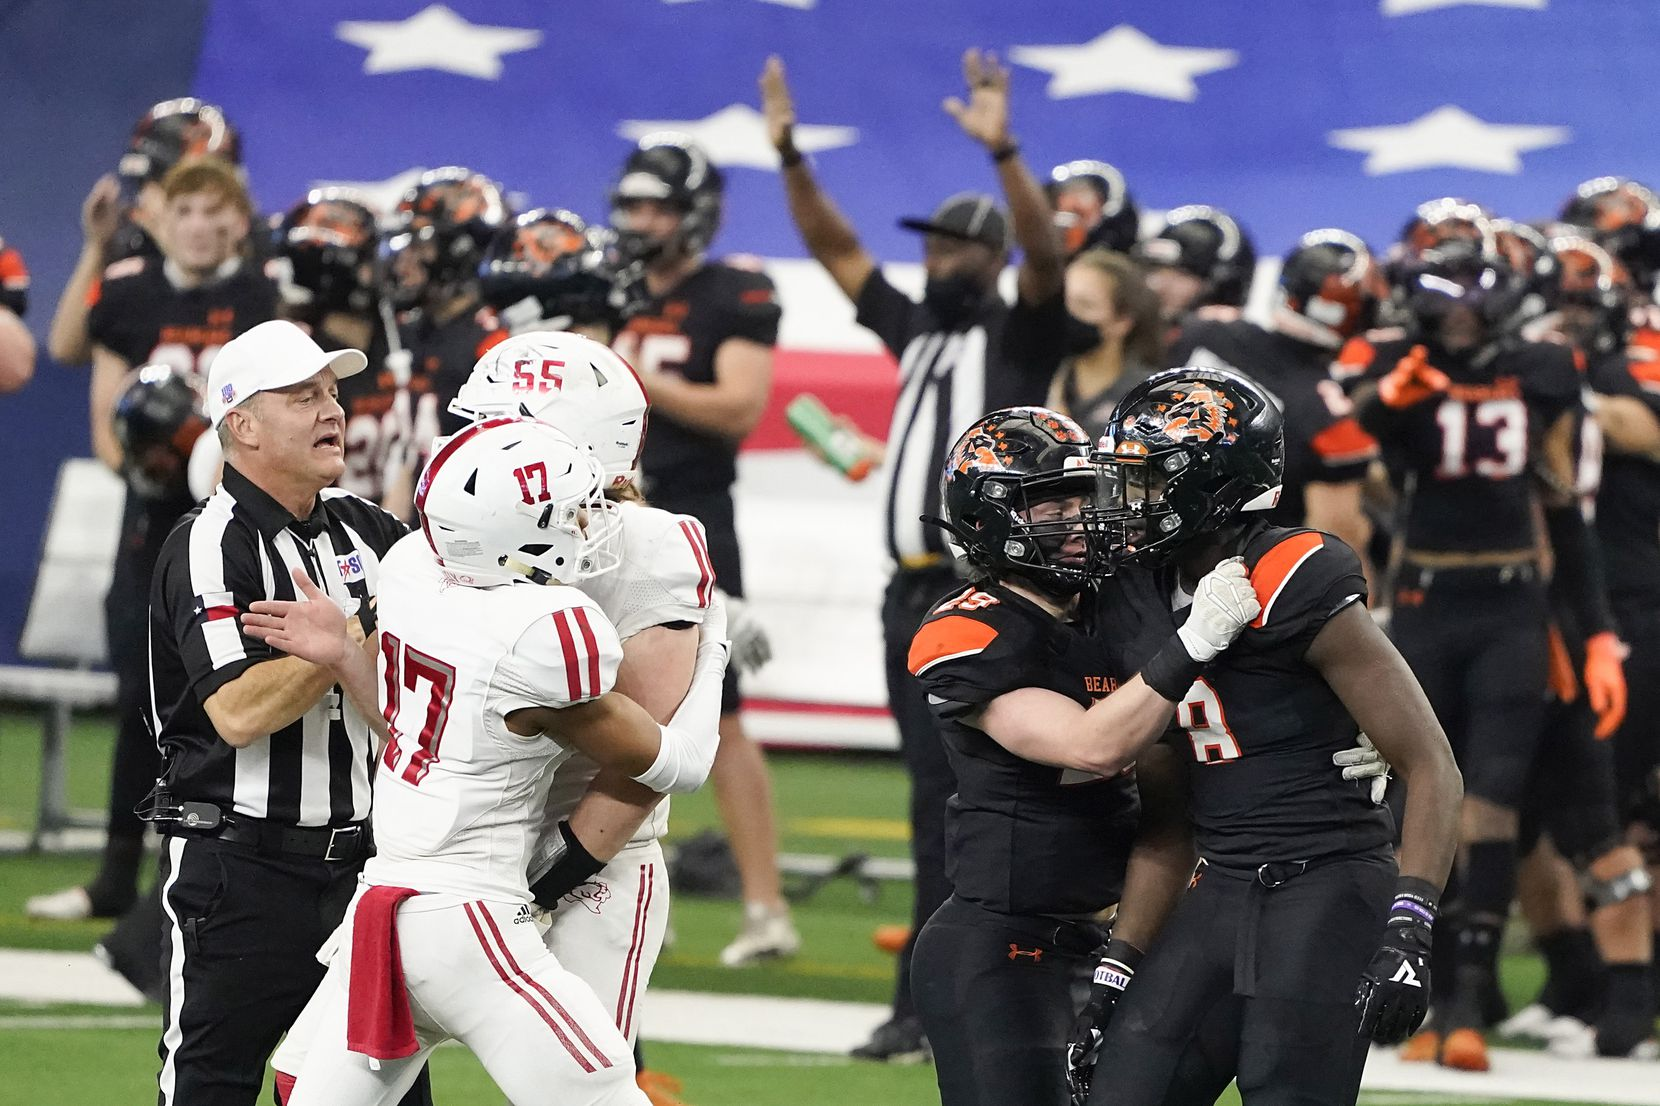 Teammates and officials race to separate Crosby offensive lineman Tyler Thomas (55) from Aledo defensive lineman Chris Wright (8), who were both penalized on the play, during the first half of the Class 5A Division II state football championship game at AT&T Stadium on Friday, Jan. 15, 2021, in Arlington. (Smiley N. Pool/The Dallas Morning News)